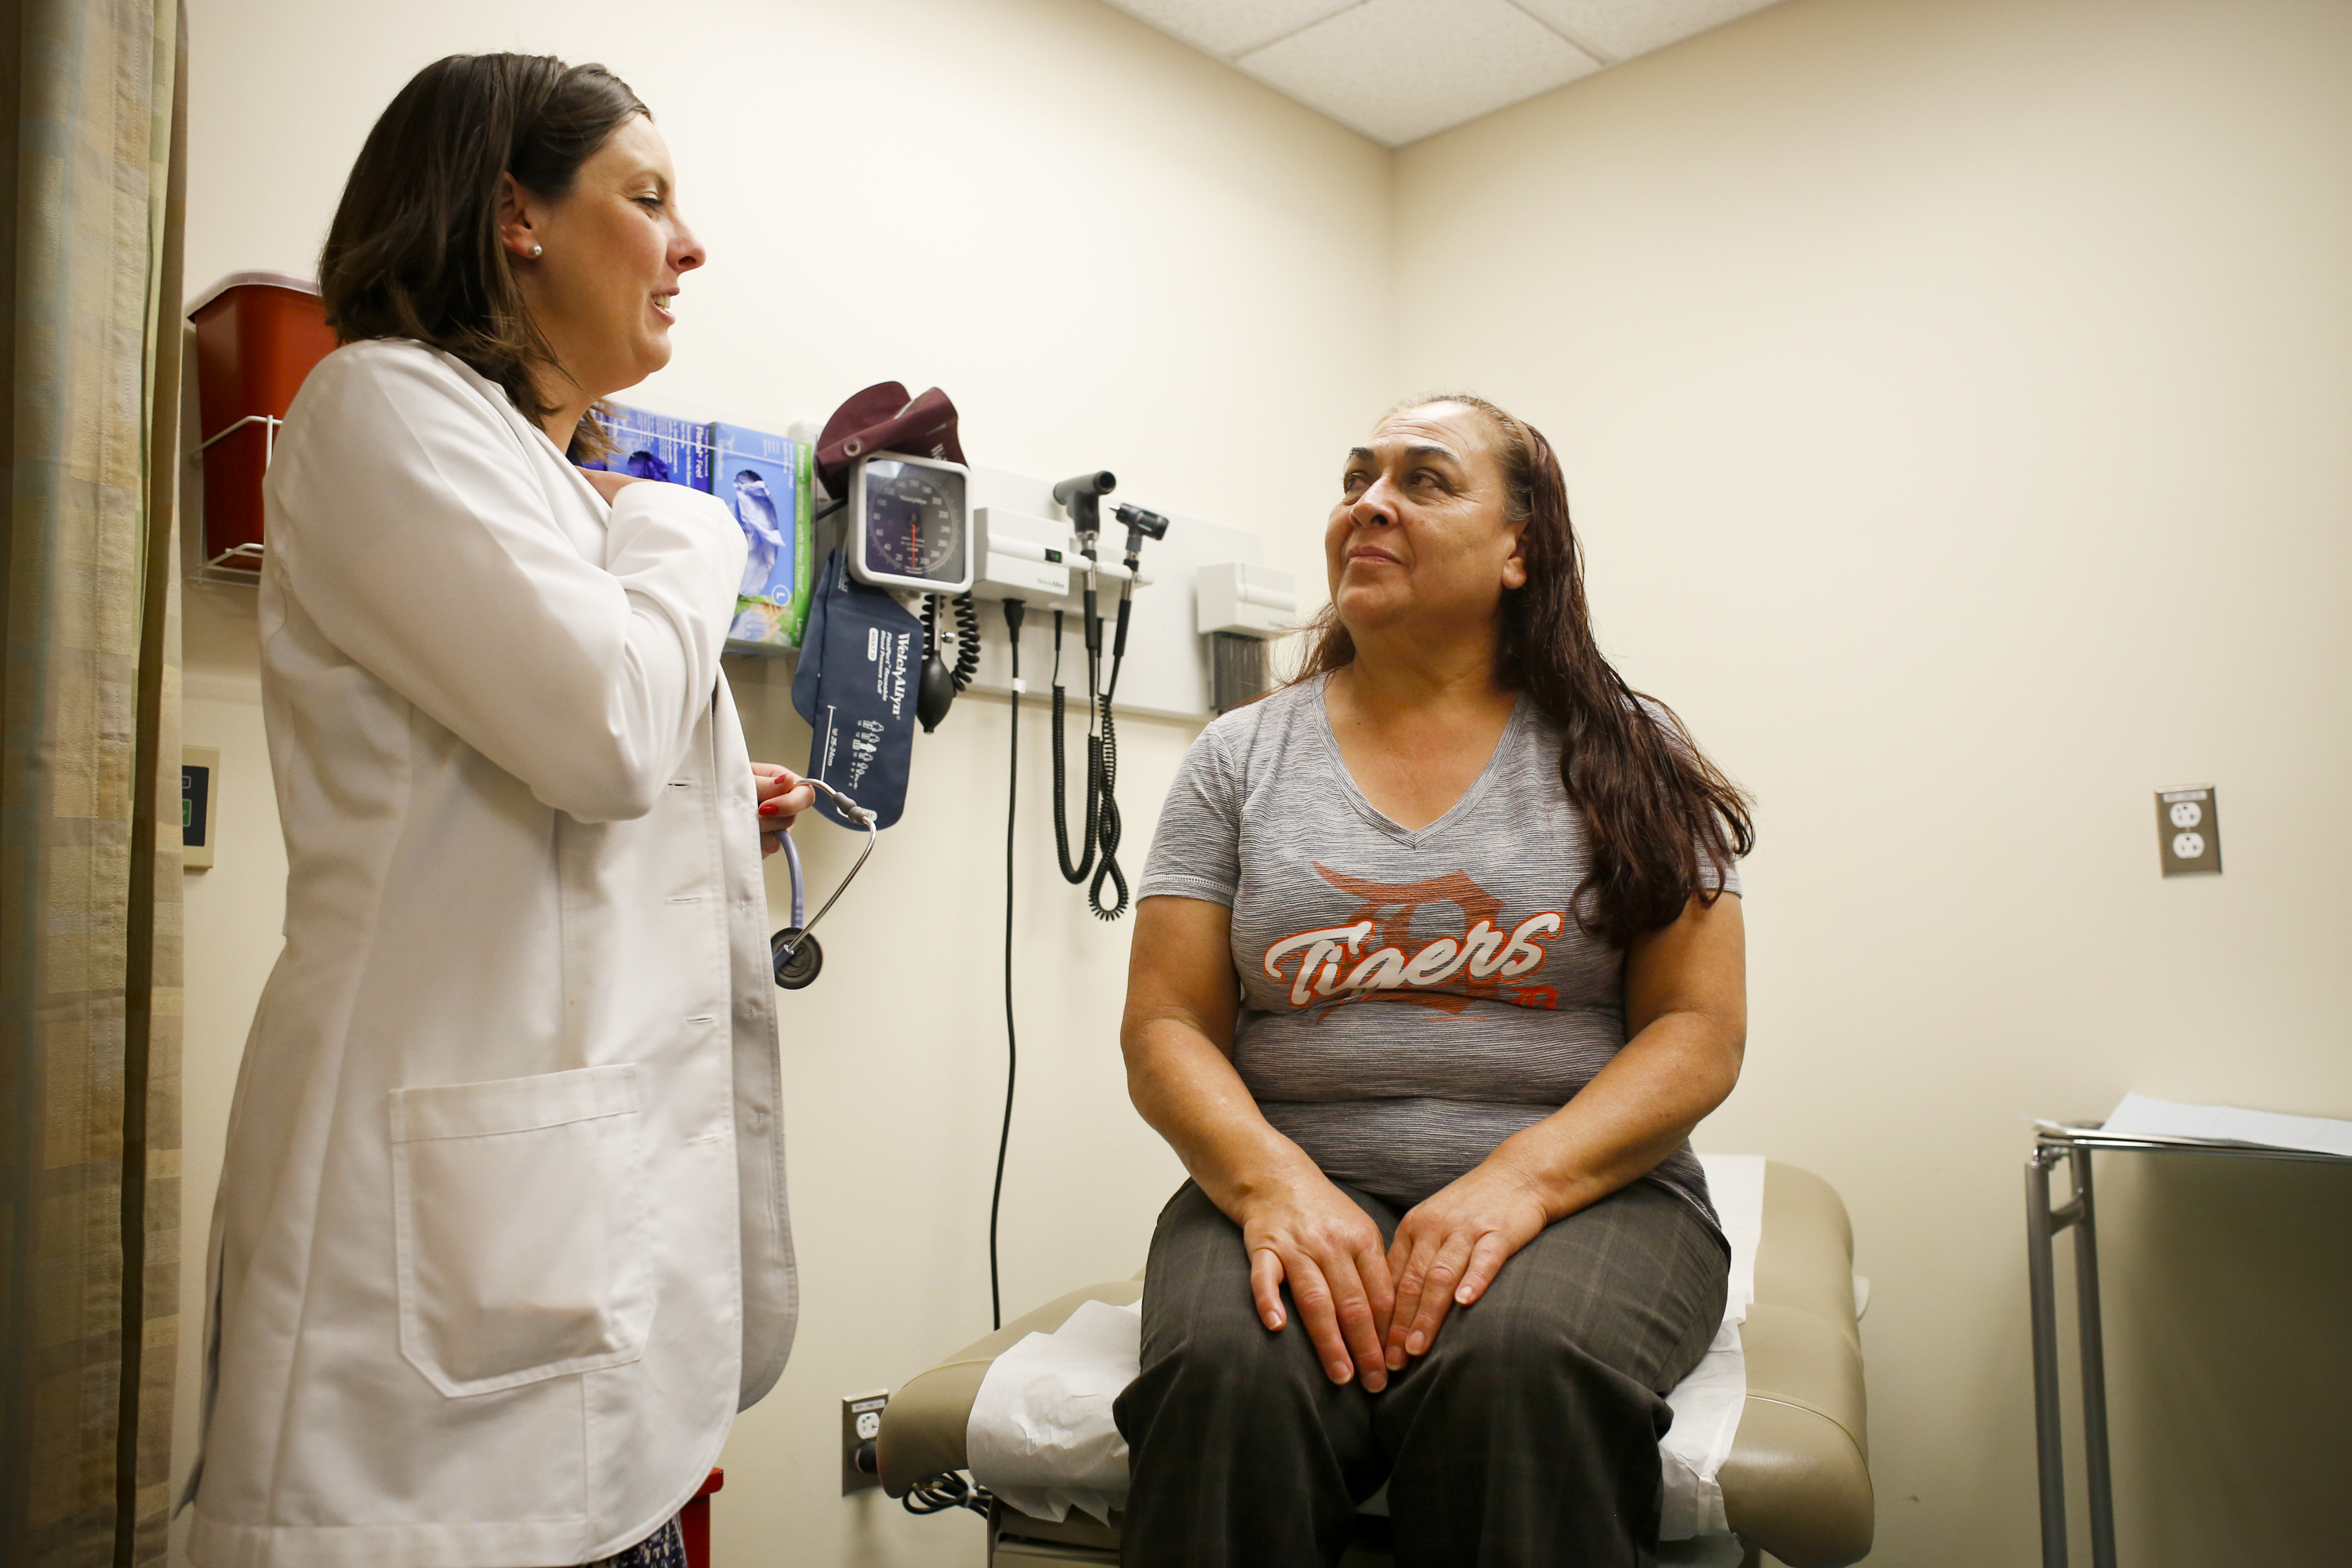 how obamacare saved detroit vox orelia garcia de soto used to skip her medications when they cost too much before the medicaid expansion elaine cromie for vox